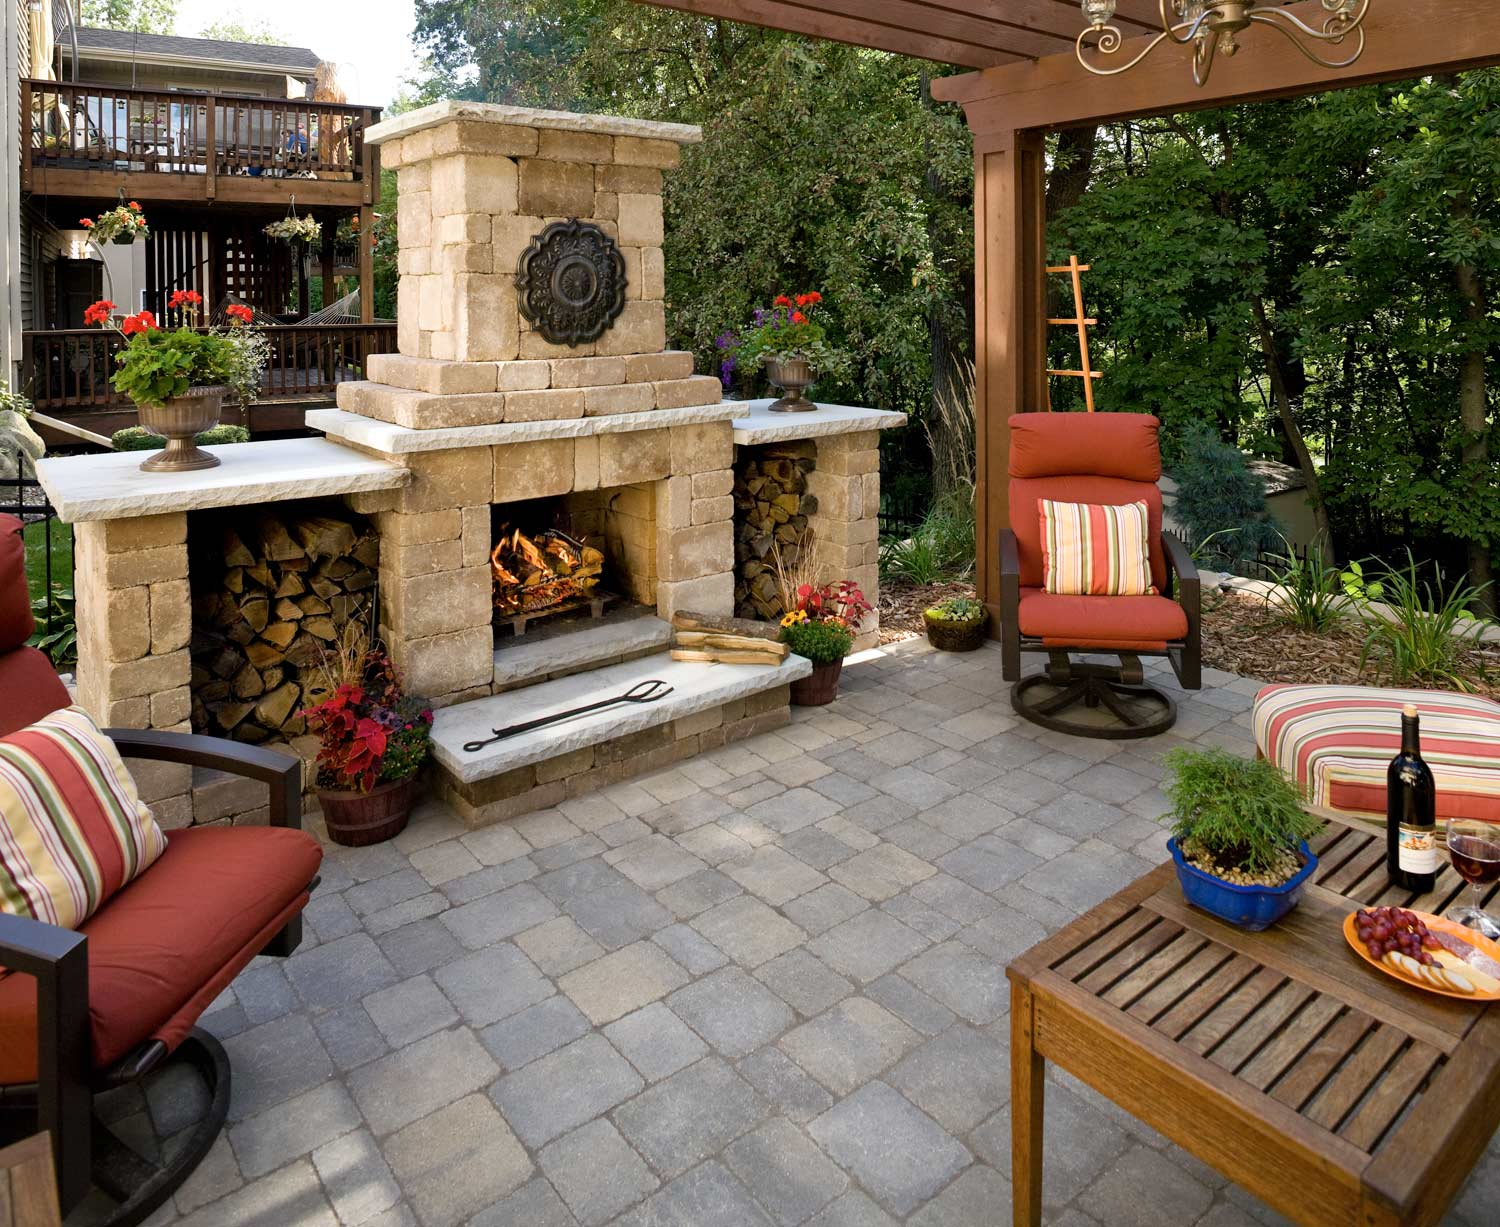 Pergola covers the entire patio in shade in this small backyard landscape in savage